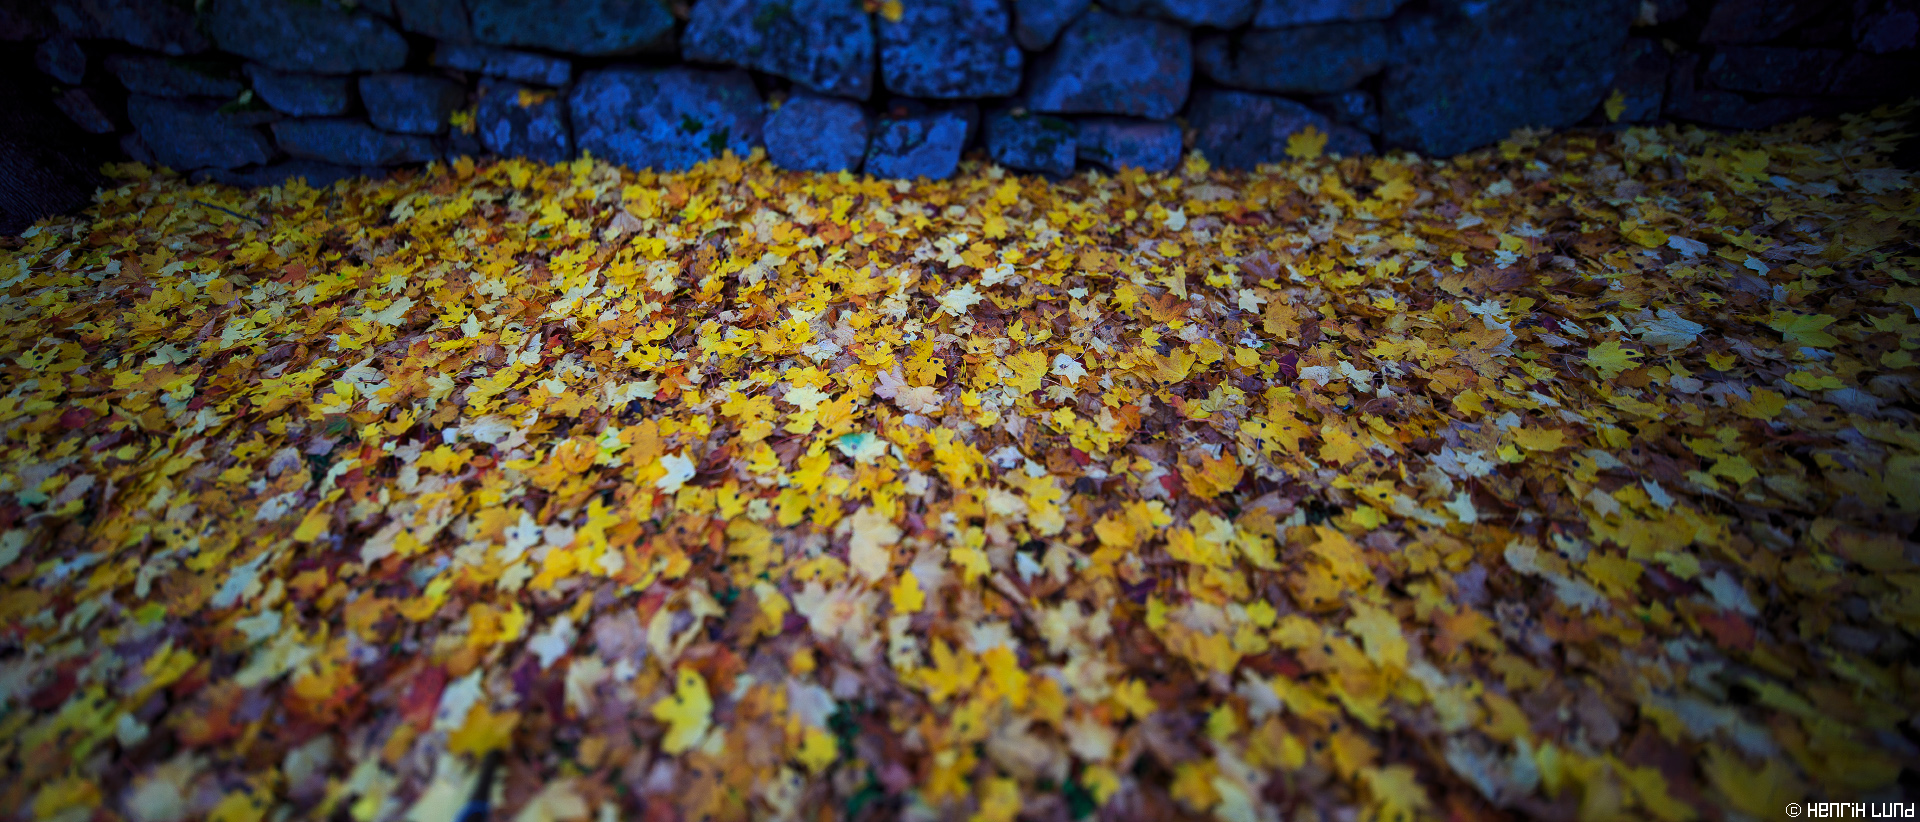 Panorama over fallen autumn leaves close to the churchyard, Lappträsk, Finland, October 2014.